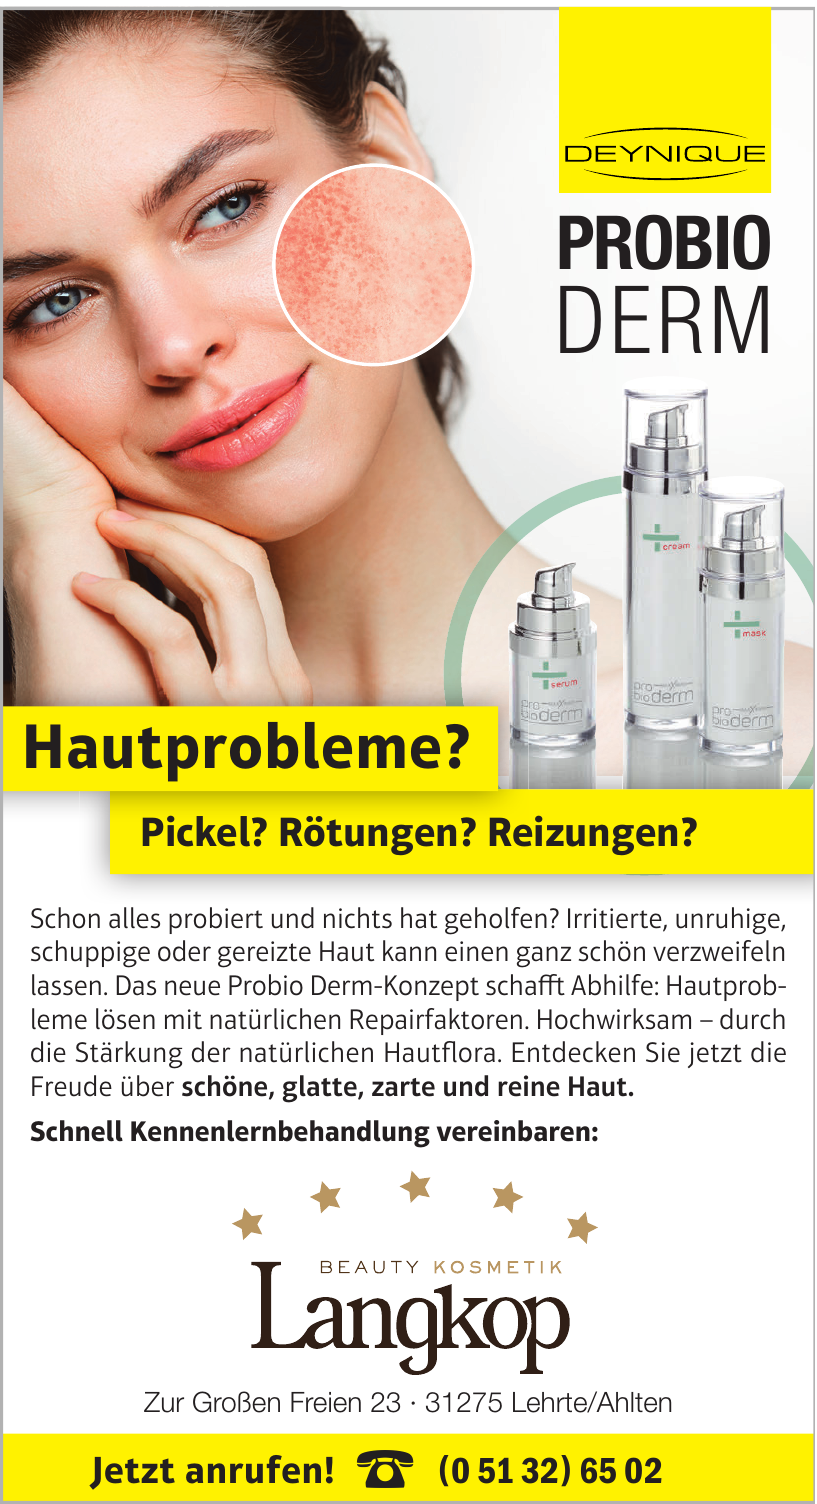 Beauty Kosmetik Langkop